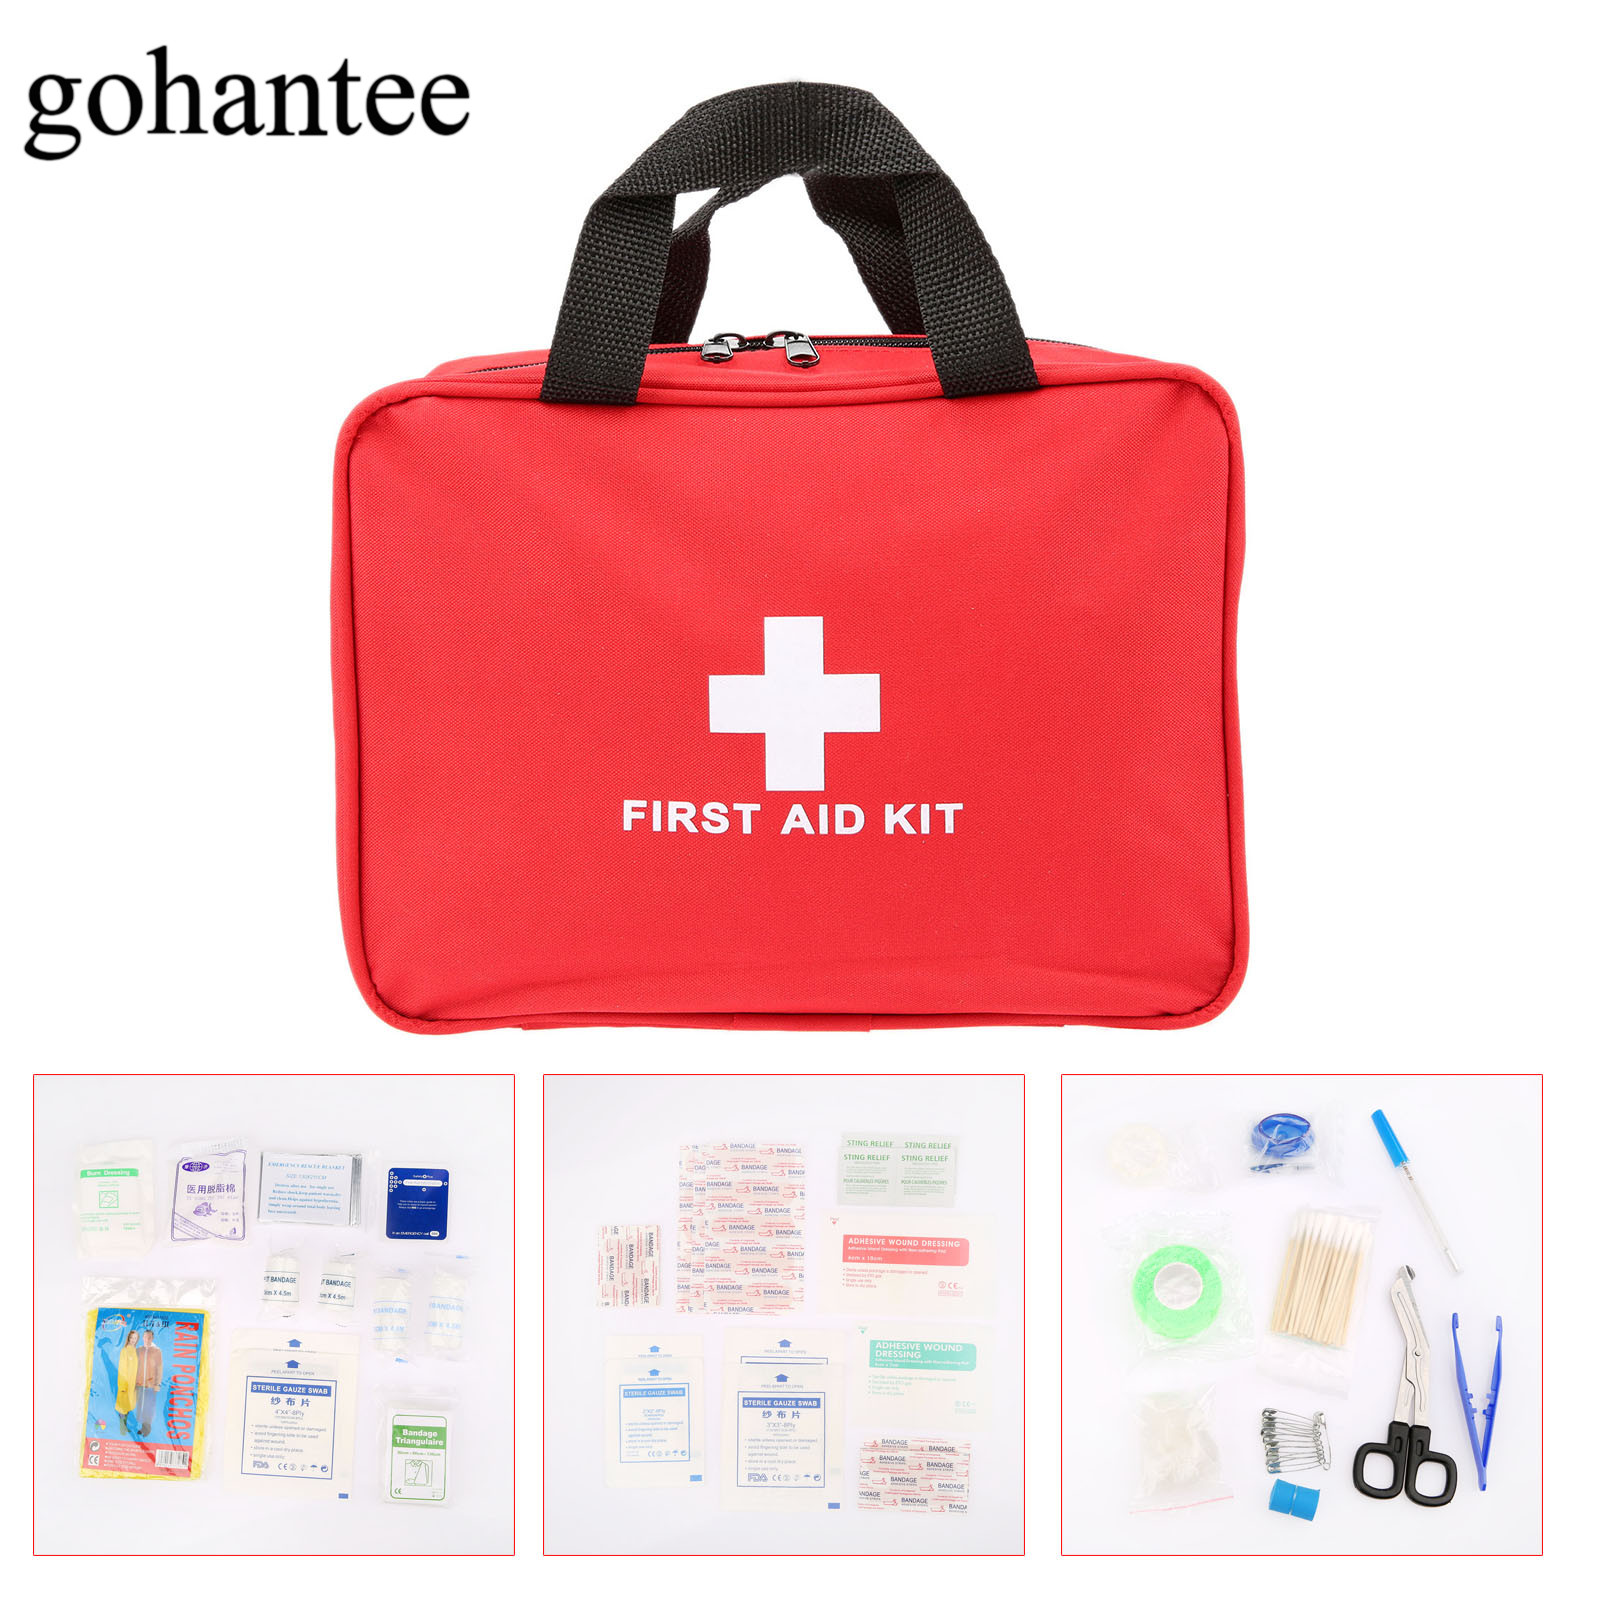 94pcs/Pack (22kinds) Portable First Aid Kit Military First Aid Pouch Outdoor Hiking Travel Home Car Emergency Treatment Pack Bag new fashion waterproof outdoor travel home portable first aid bag carry small medical emergency kit first aid contains 11 kinds